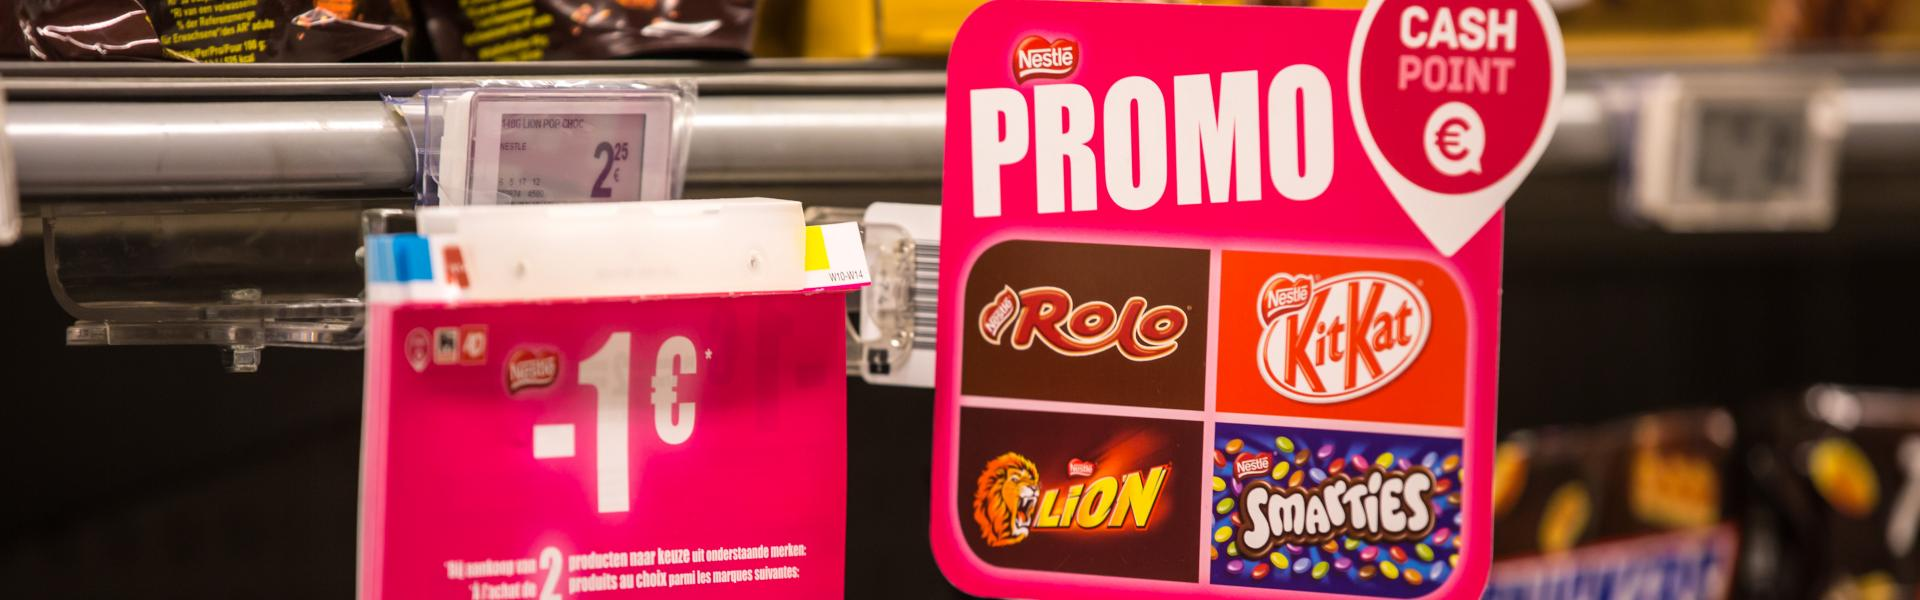 Cash point - reduction - couponing - in-store promotion